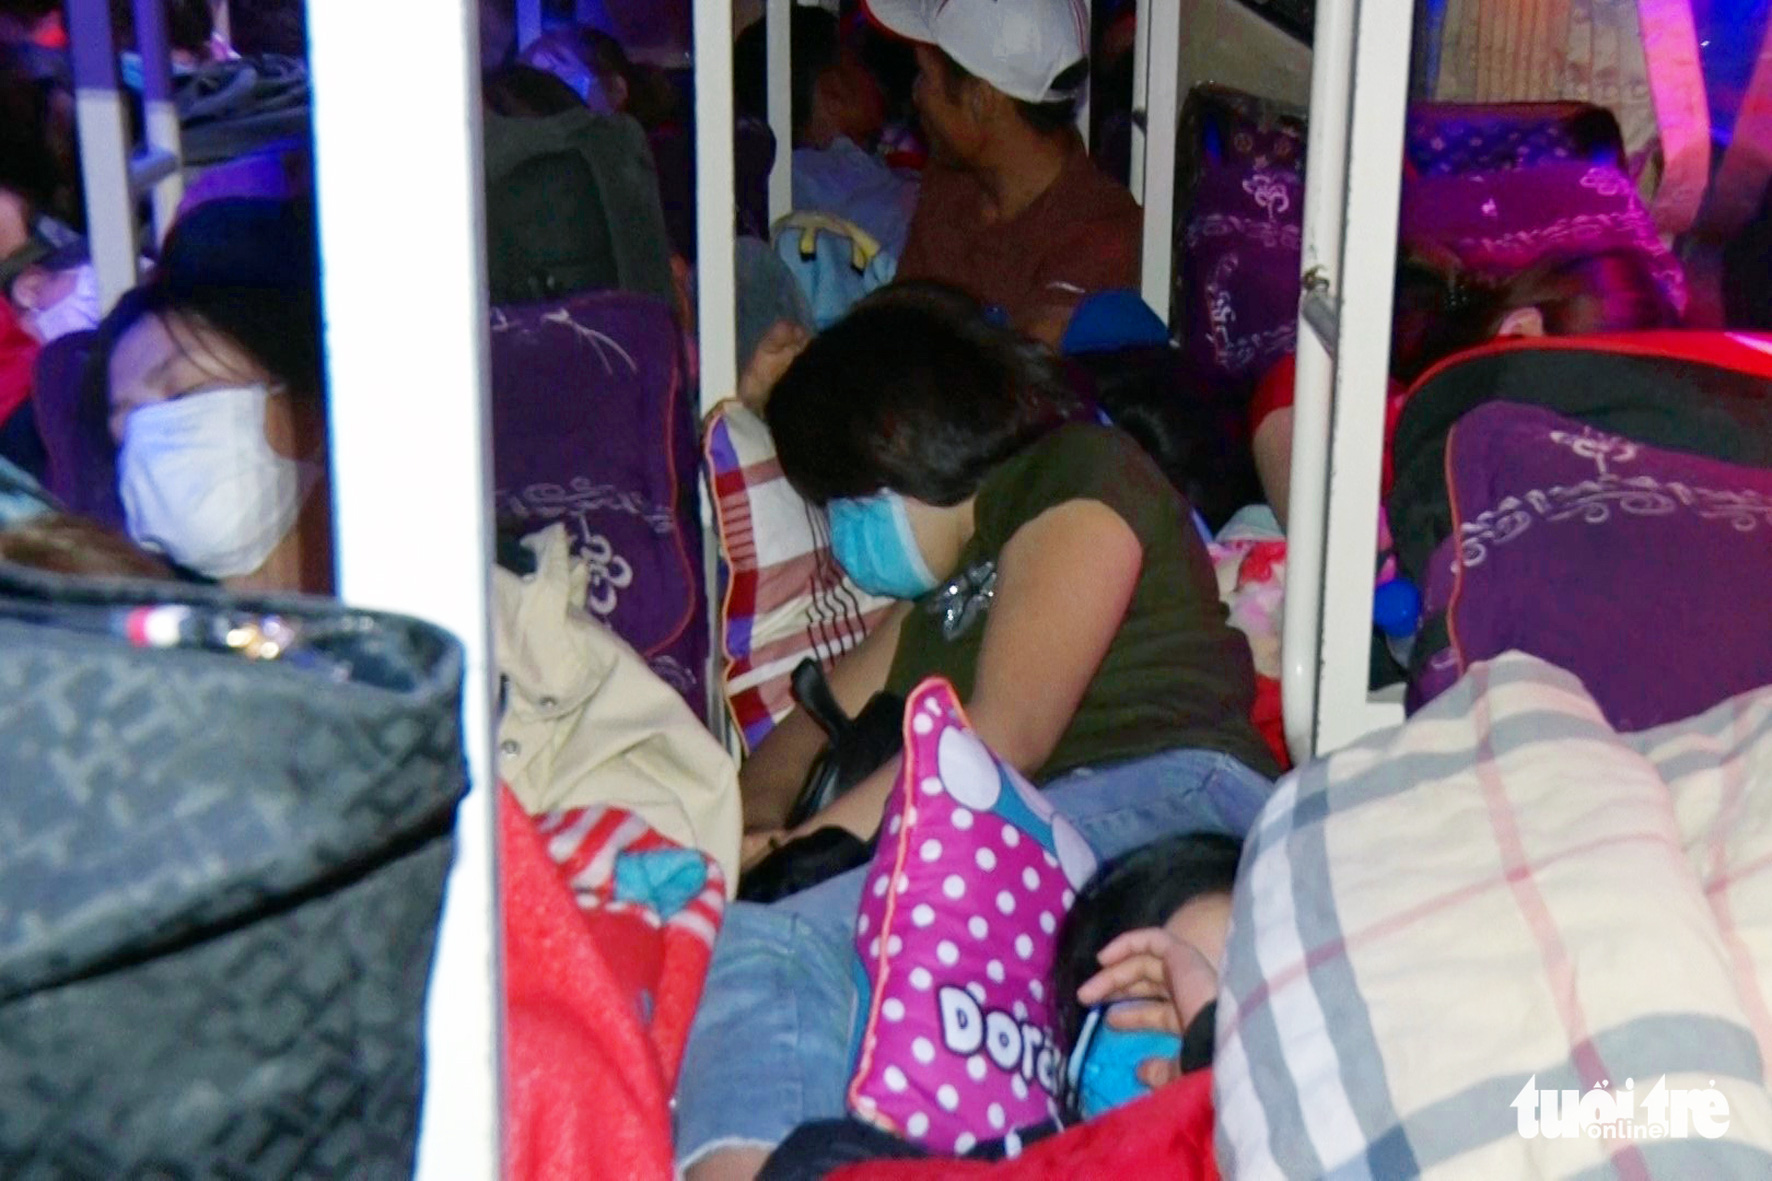 Nearly 100 packed inside sleeper bus in Vietnam's Tet migration madness